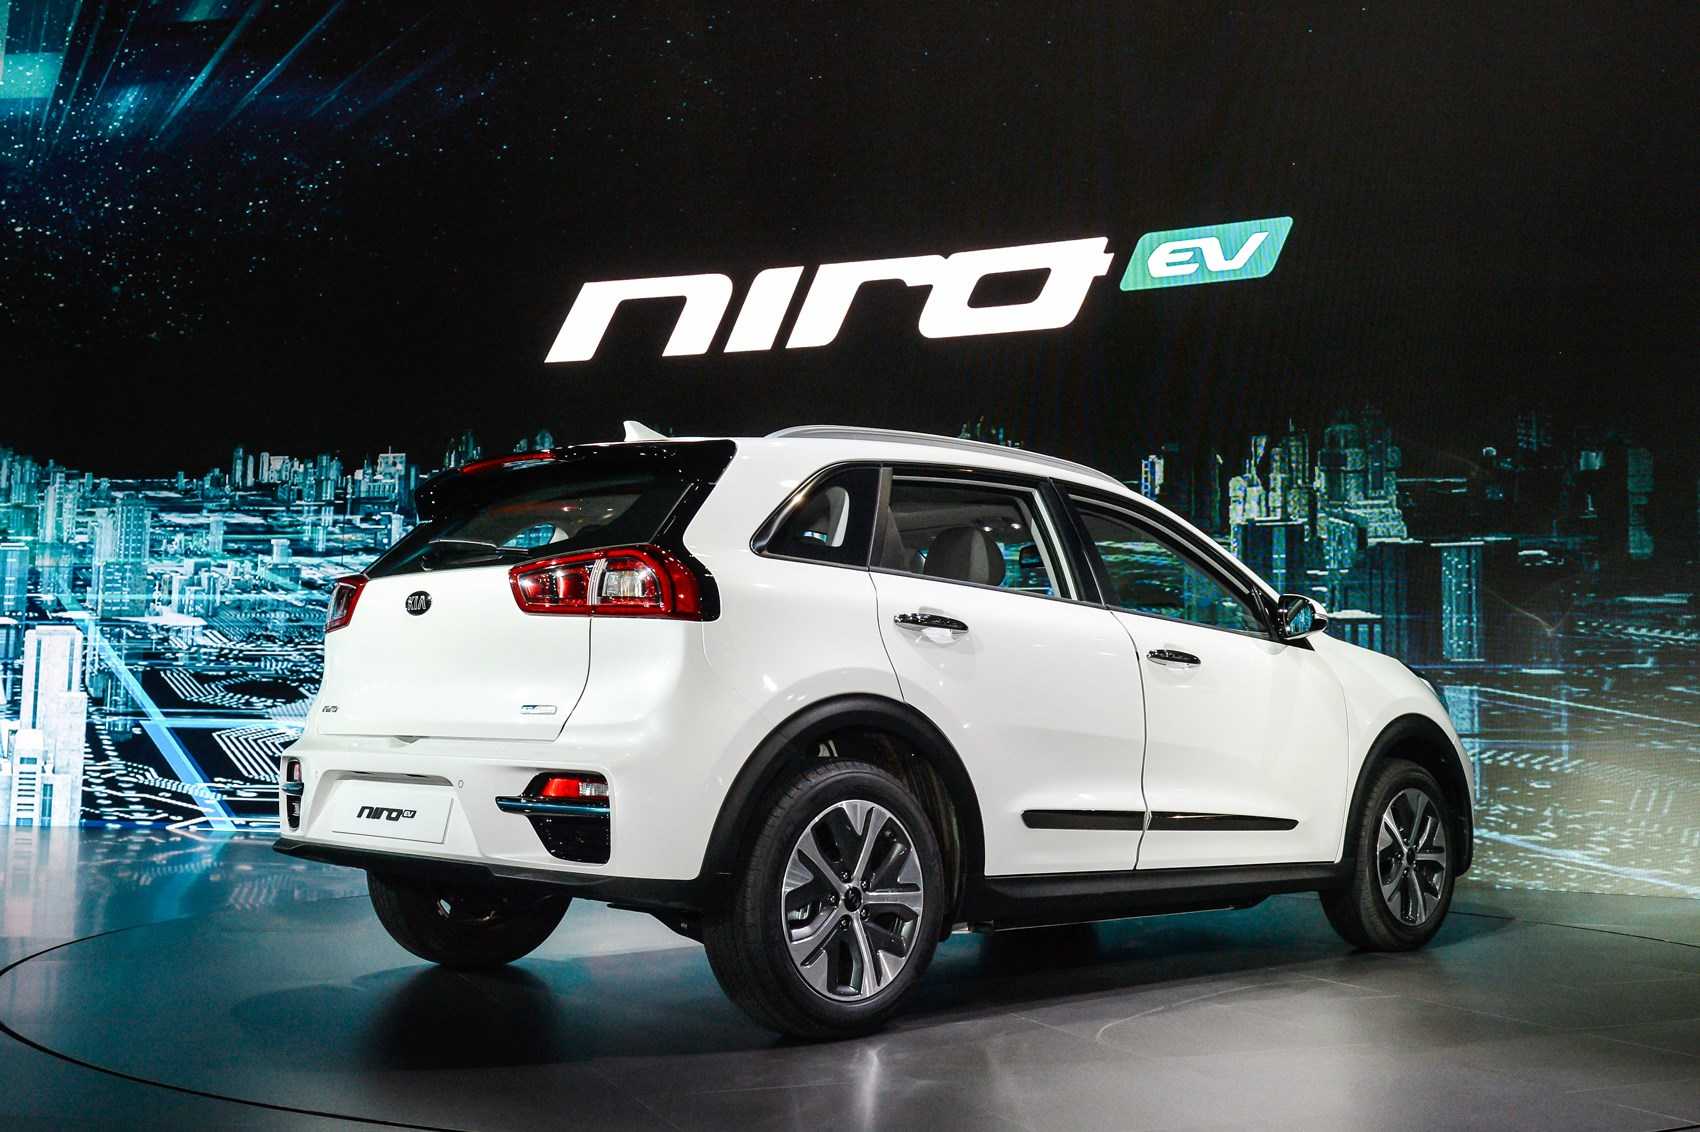 new kia niro ev specs for all electric crossover revealed. Black Bedroom Furniture Sets. Home Design Ideas